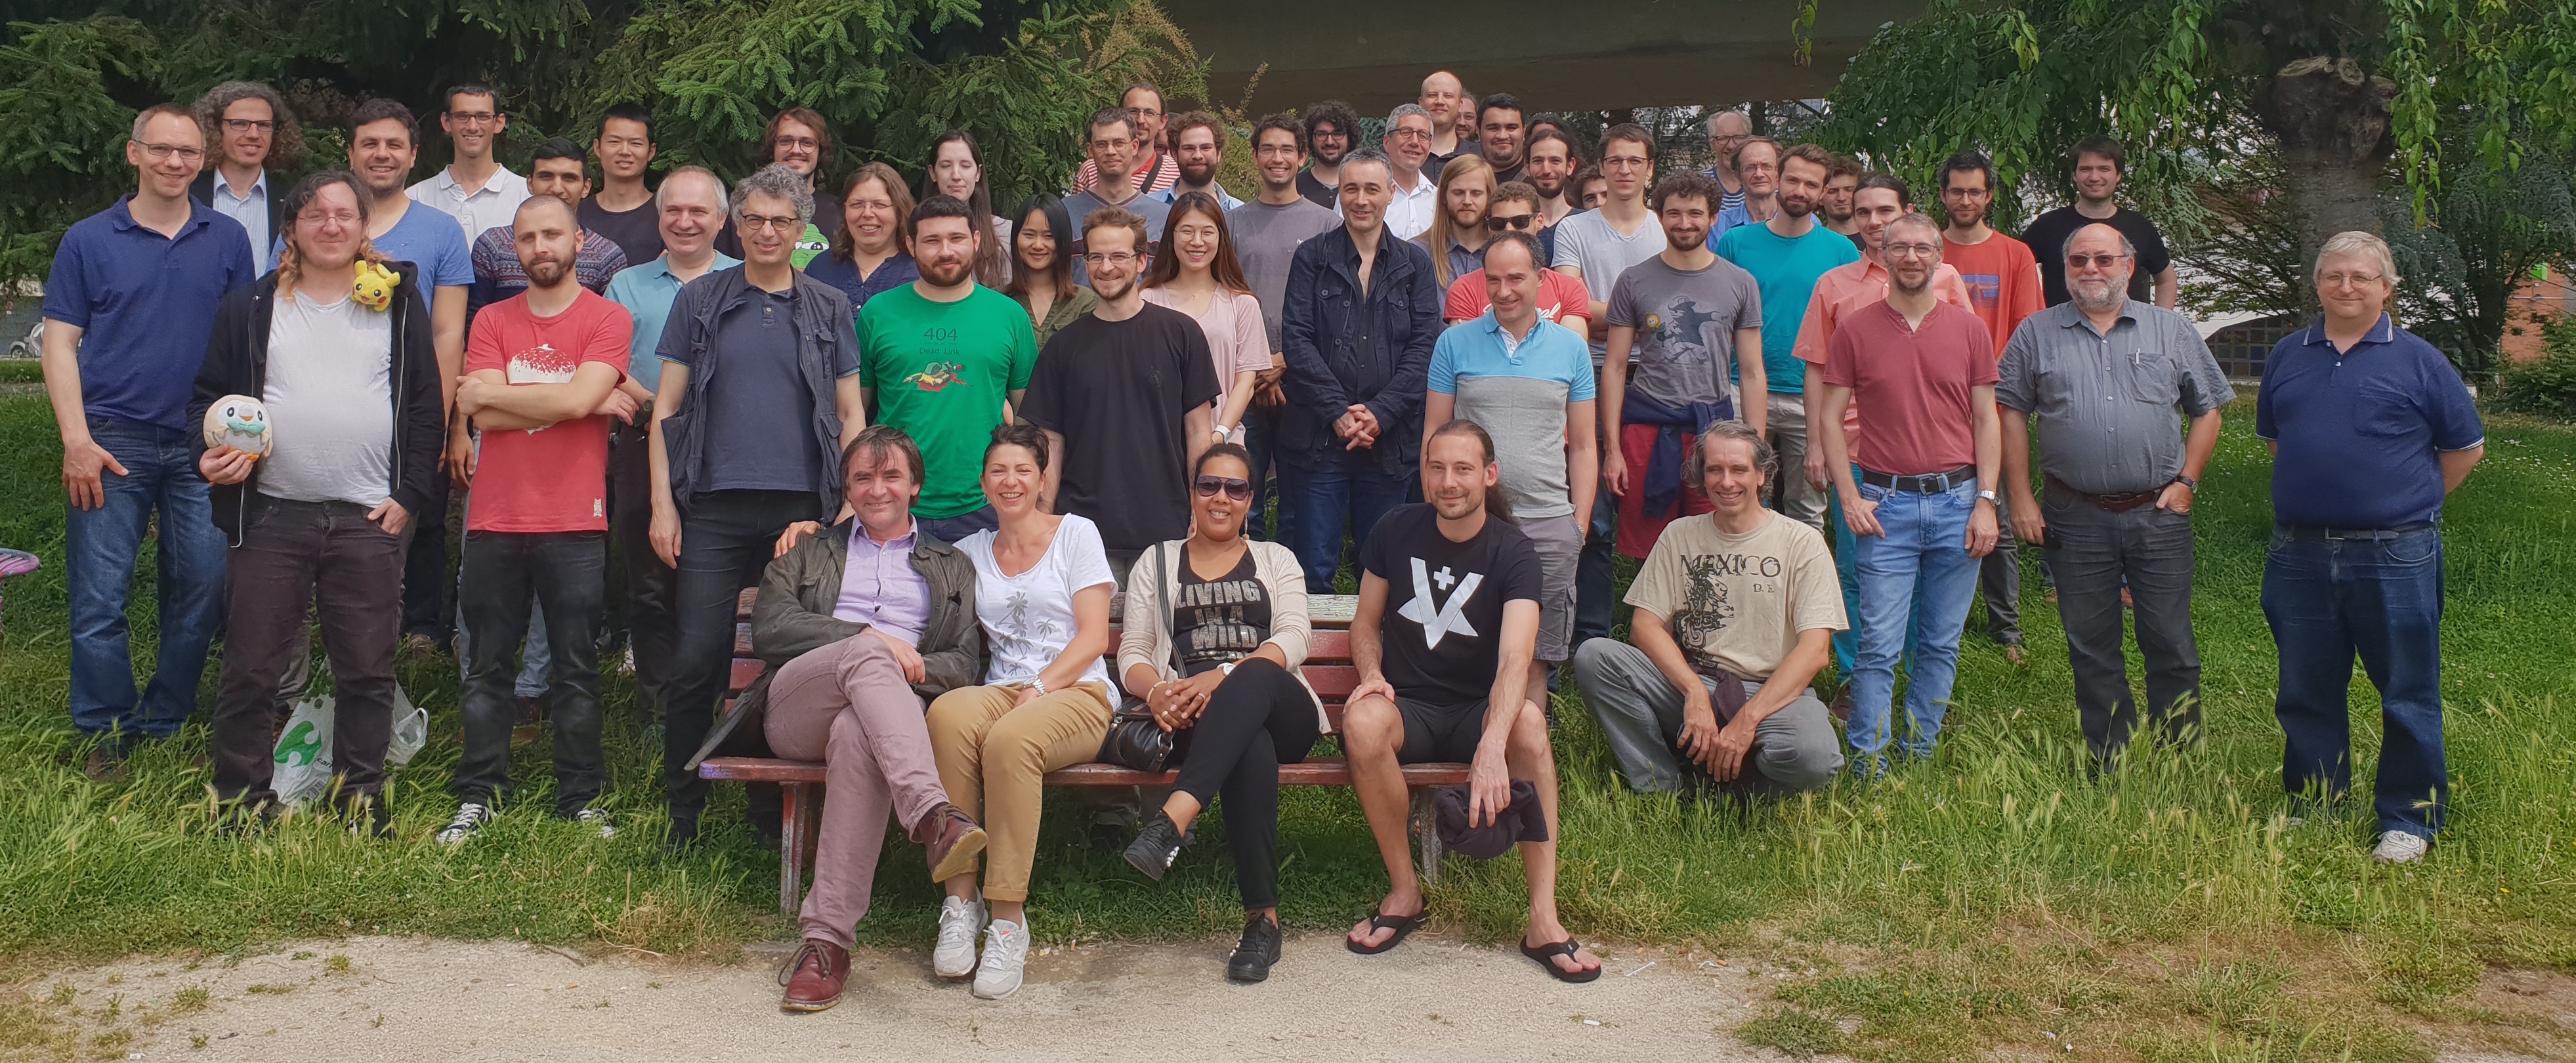 LSV Seminar 2018 in Reims